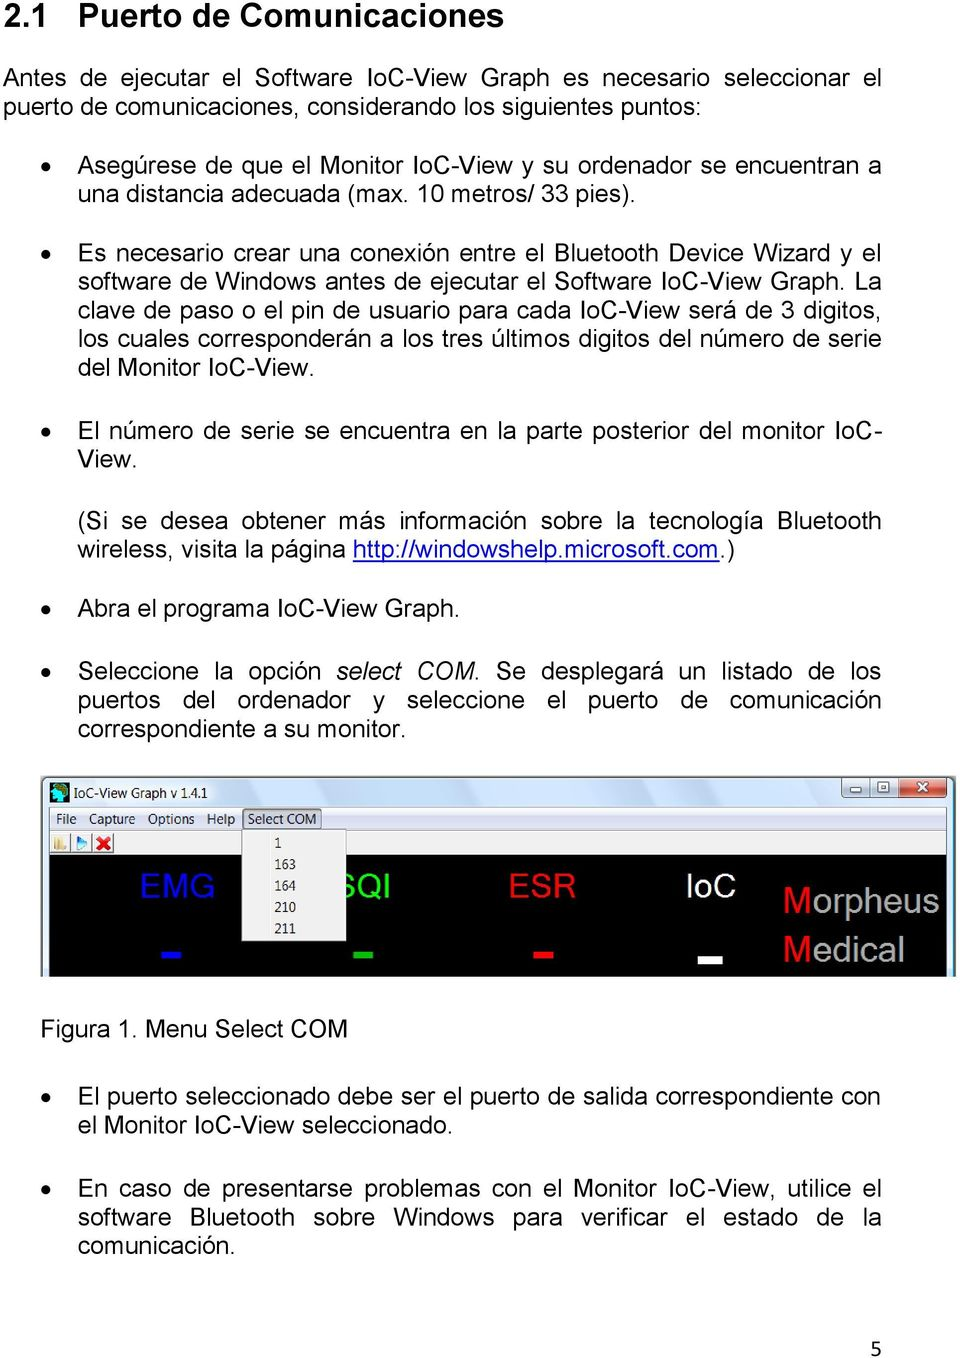 Es necesario crear una conexión entre el Bluetooth Device Wizard y el software de Windows antes de ejecutar el Software IoC-View Graph.